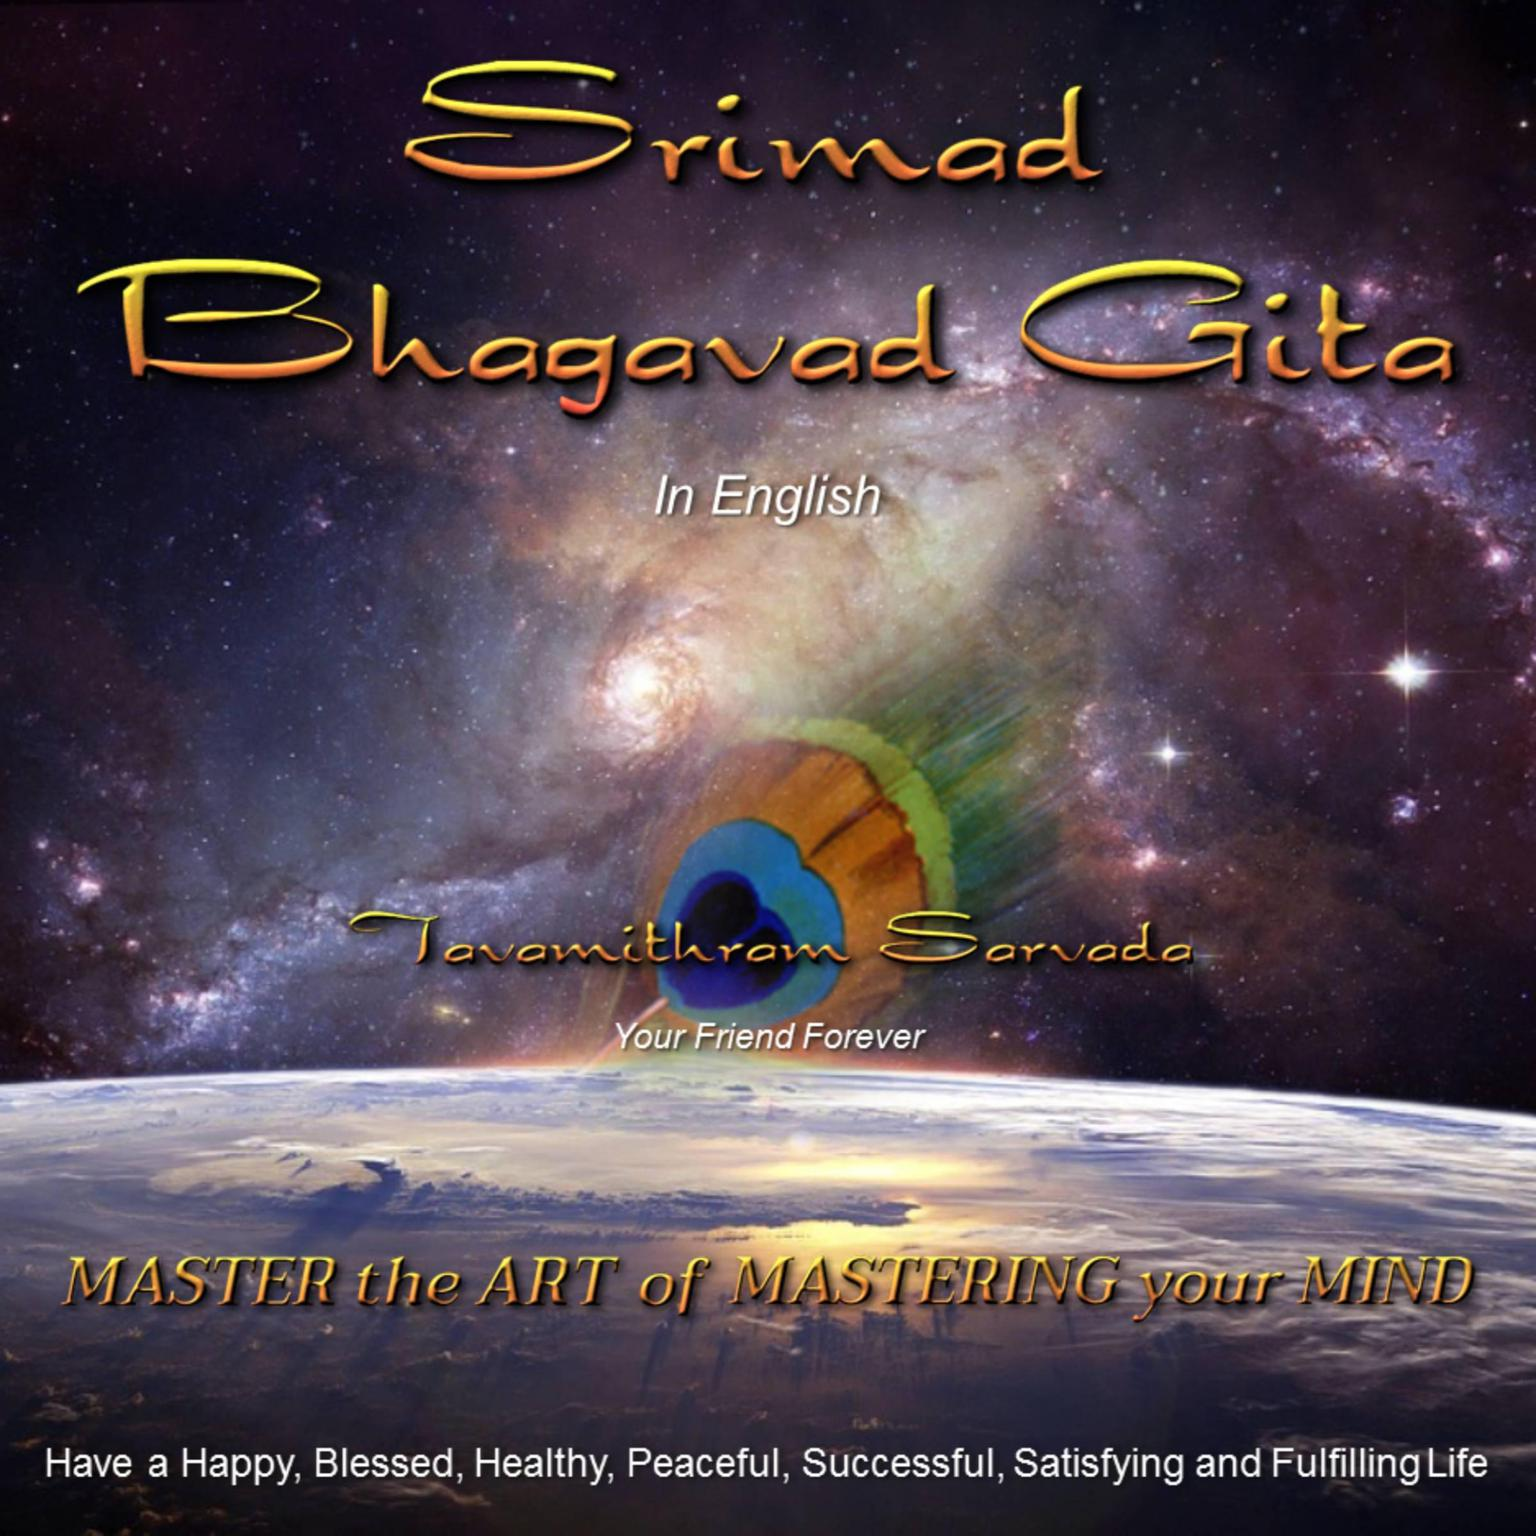 Printable The Srimad Bhagavad Gita in English retold and read for you by Tavamithram Sarvada Audiobook Cover Art